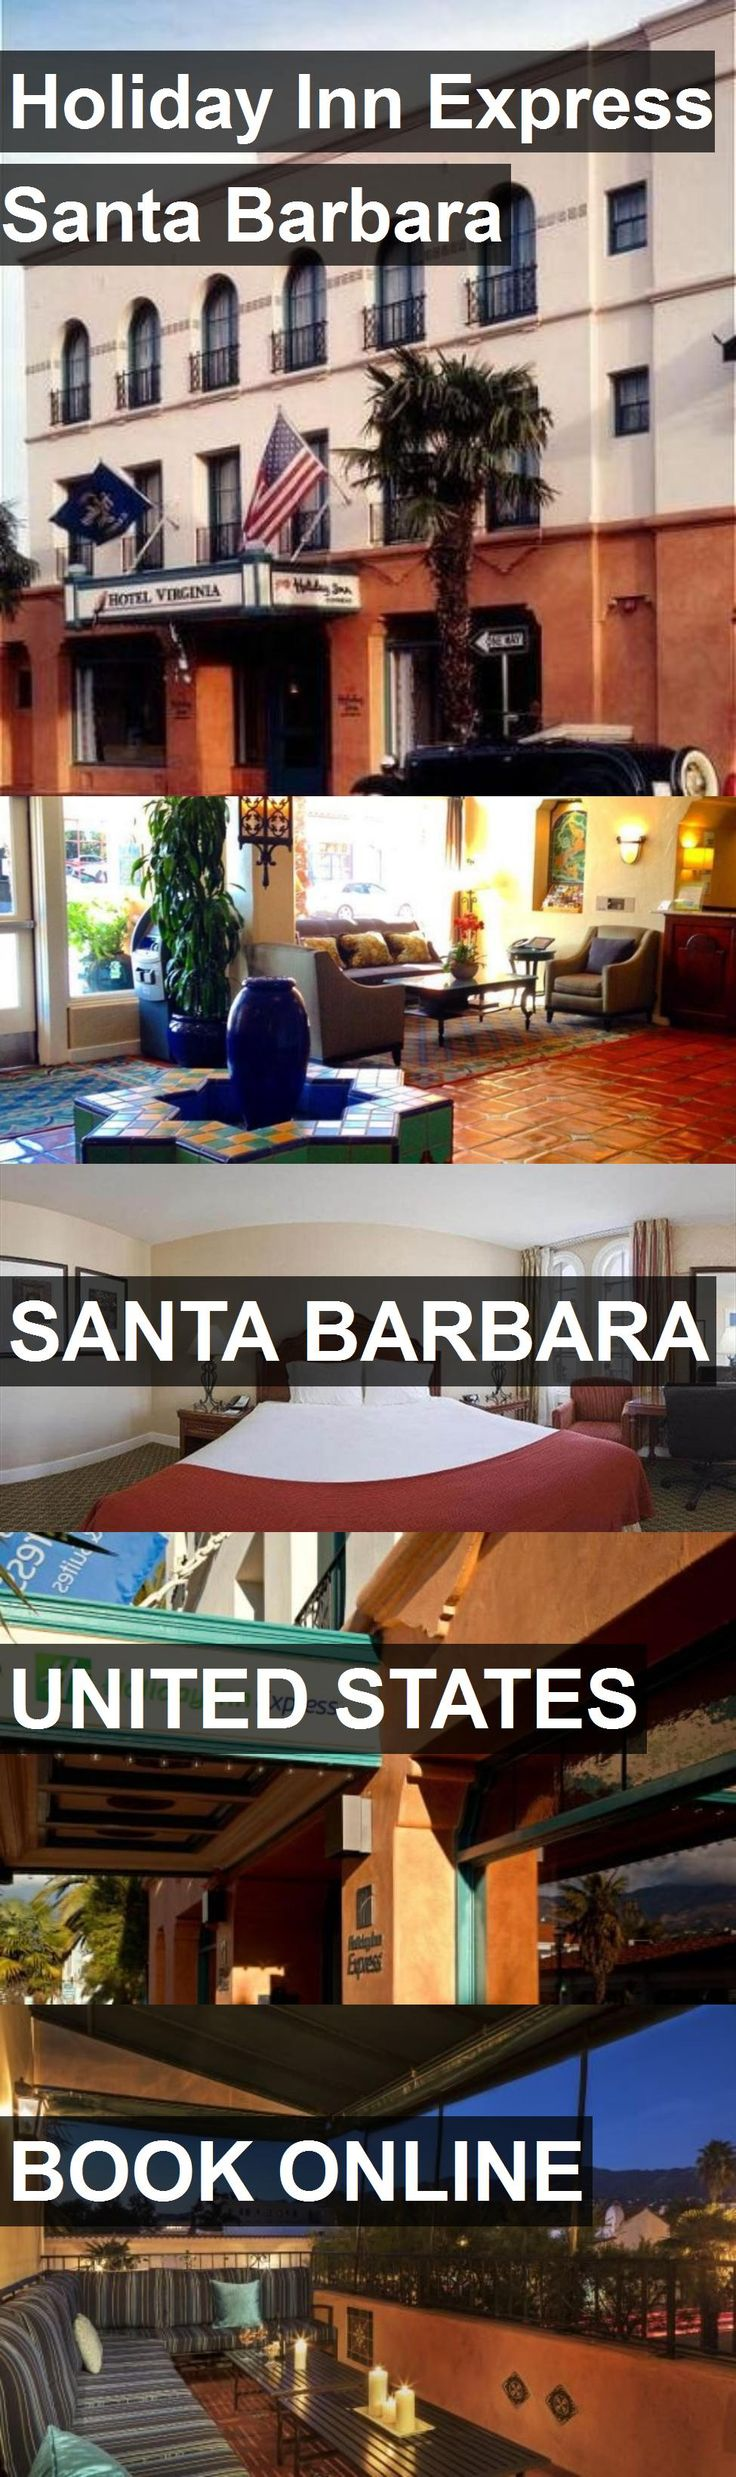 Us Map With State Abbreviations And Time Zones%0A Hotel Holiday Inn Express Santa Barbara in Santa Barbara  United States   For more information